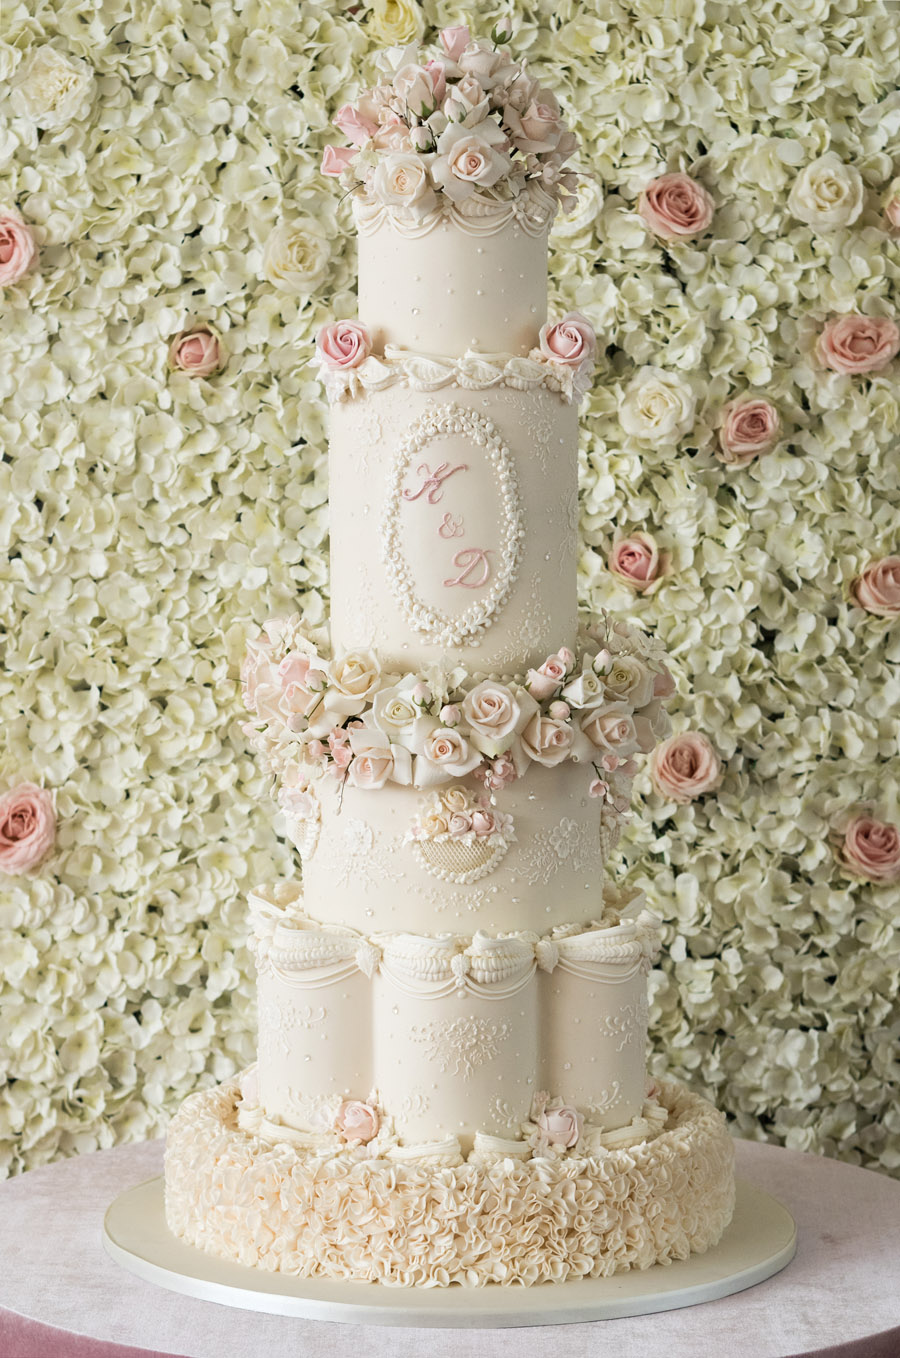 Beautiful wedding cakes by The Frostery - trends and ideas for 2019 (19)